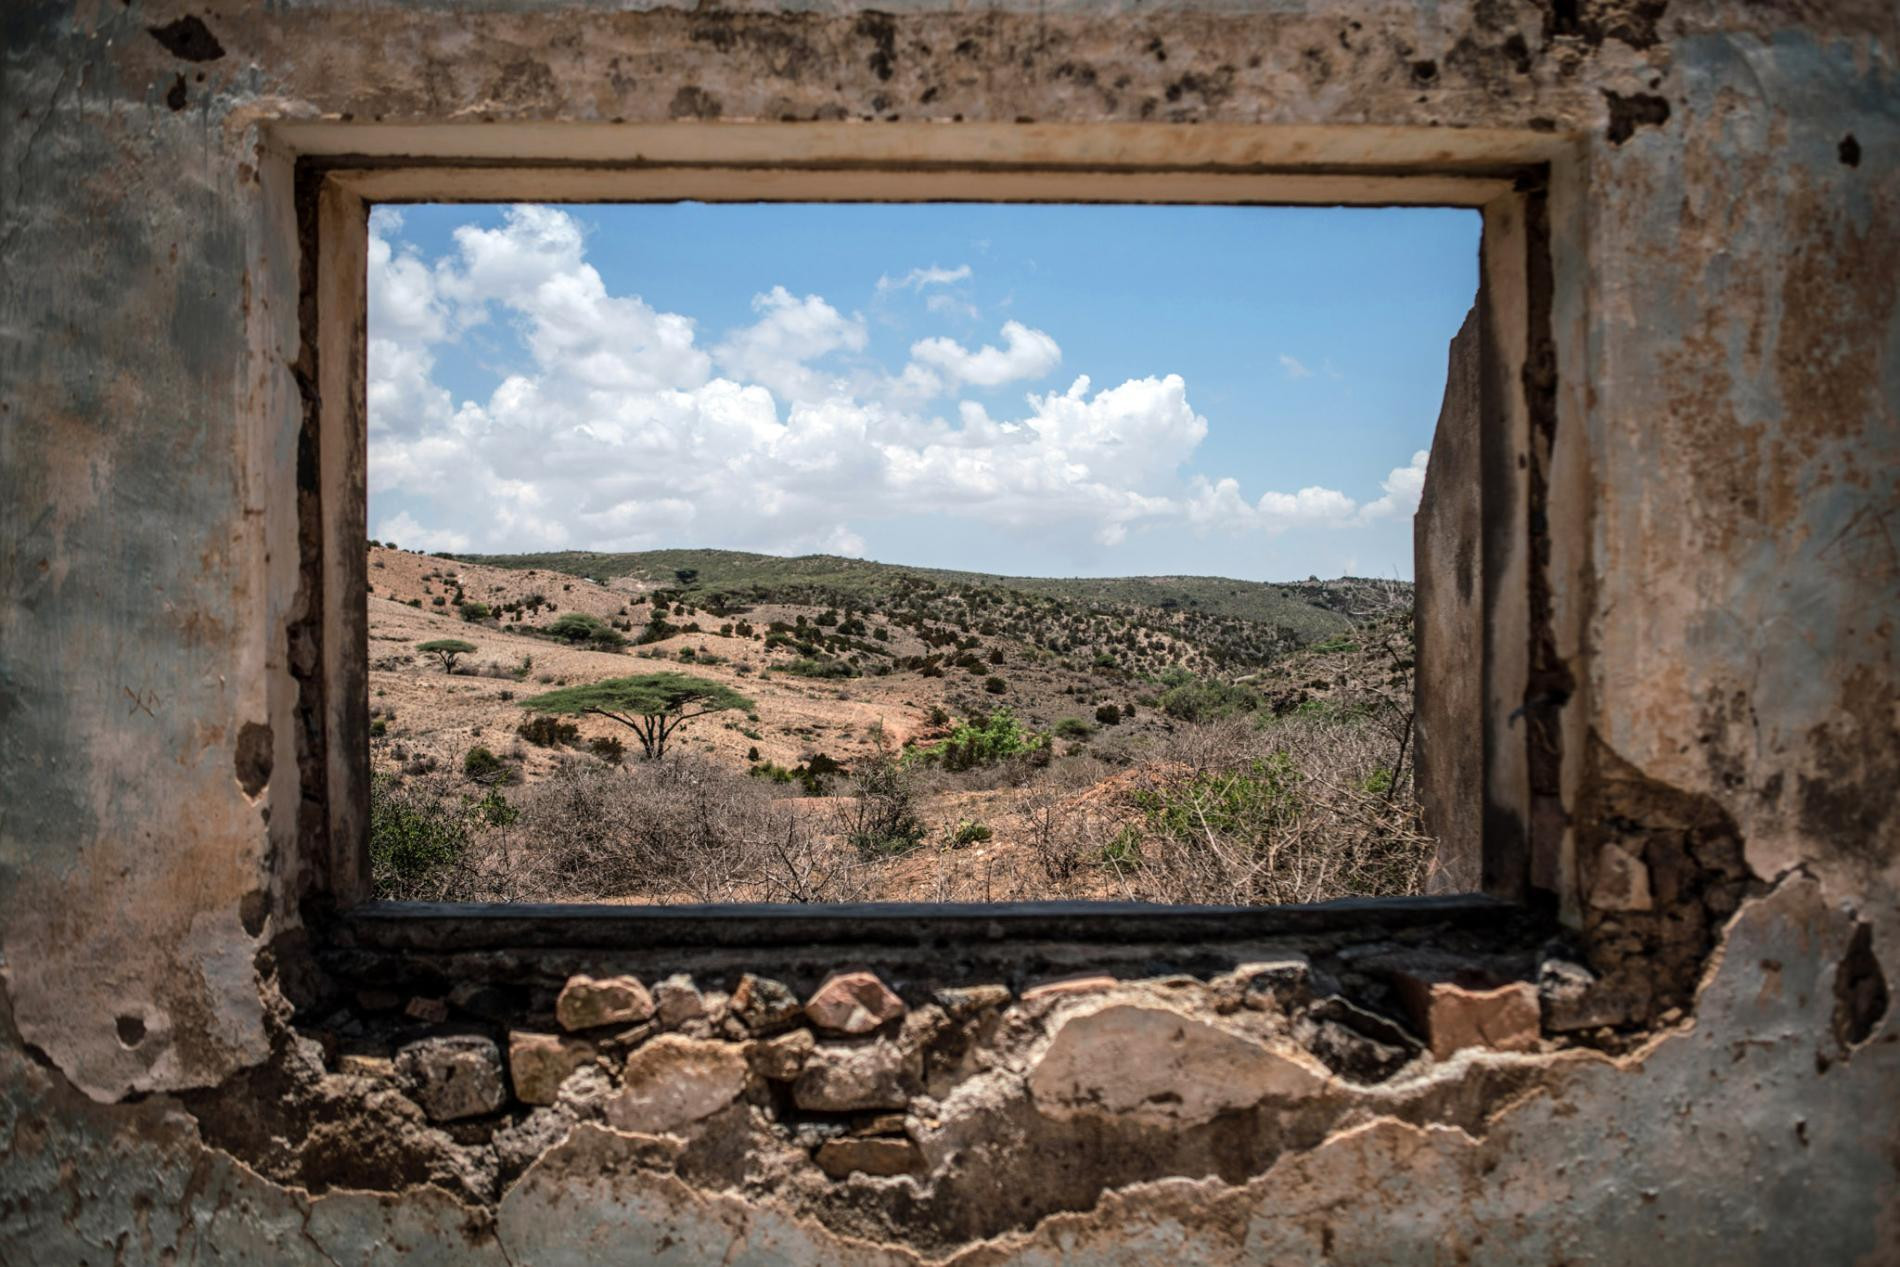 Somaliland's parched landscape is seen from inside a crumbling colonial building in Sheikh. Pressures from a changing climate, which is intensifying droughts, along with a decades-long civil war, are shattering the region's pastoral economy and forcing Somalis into IDP and refugee camps. Women in the camps live in constant fear of violence.